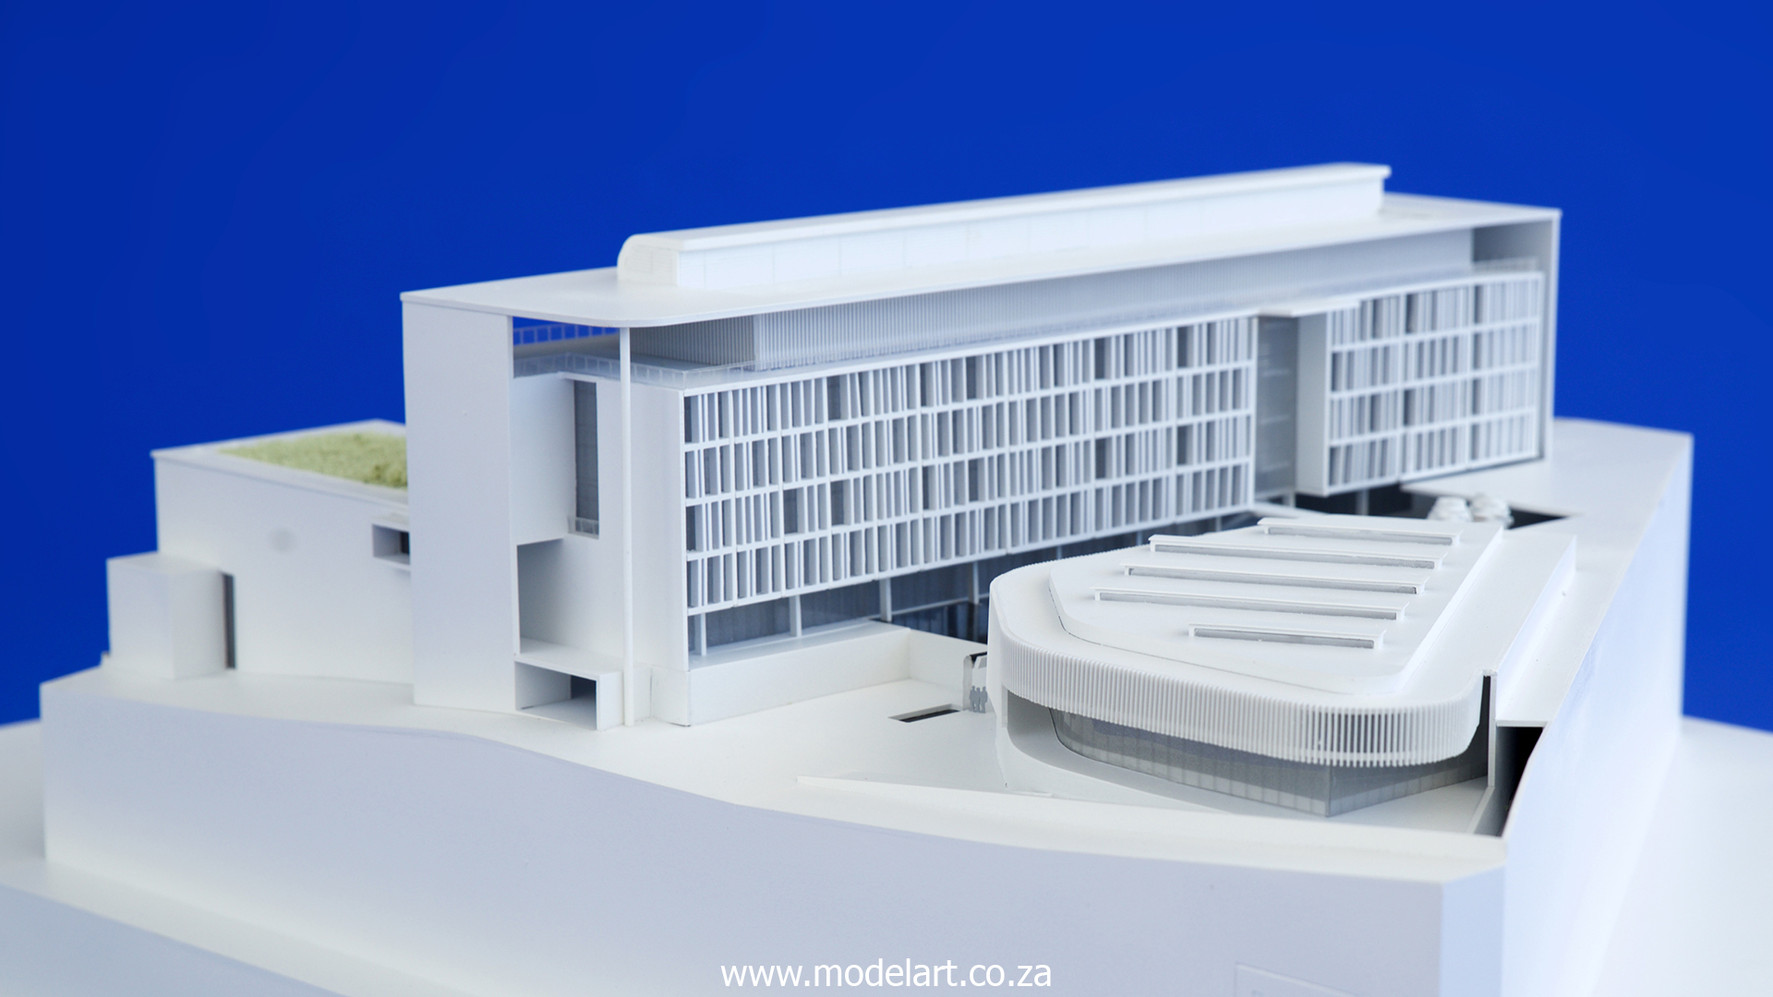 Architectural-Scale-Model-Conceptual-AU Building-4